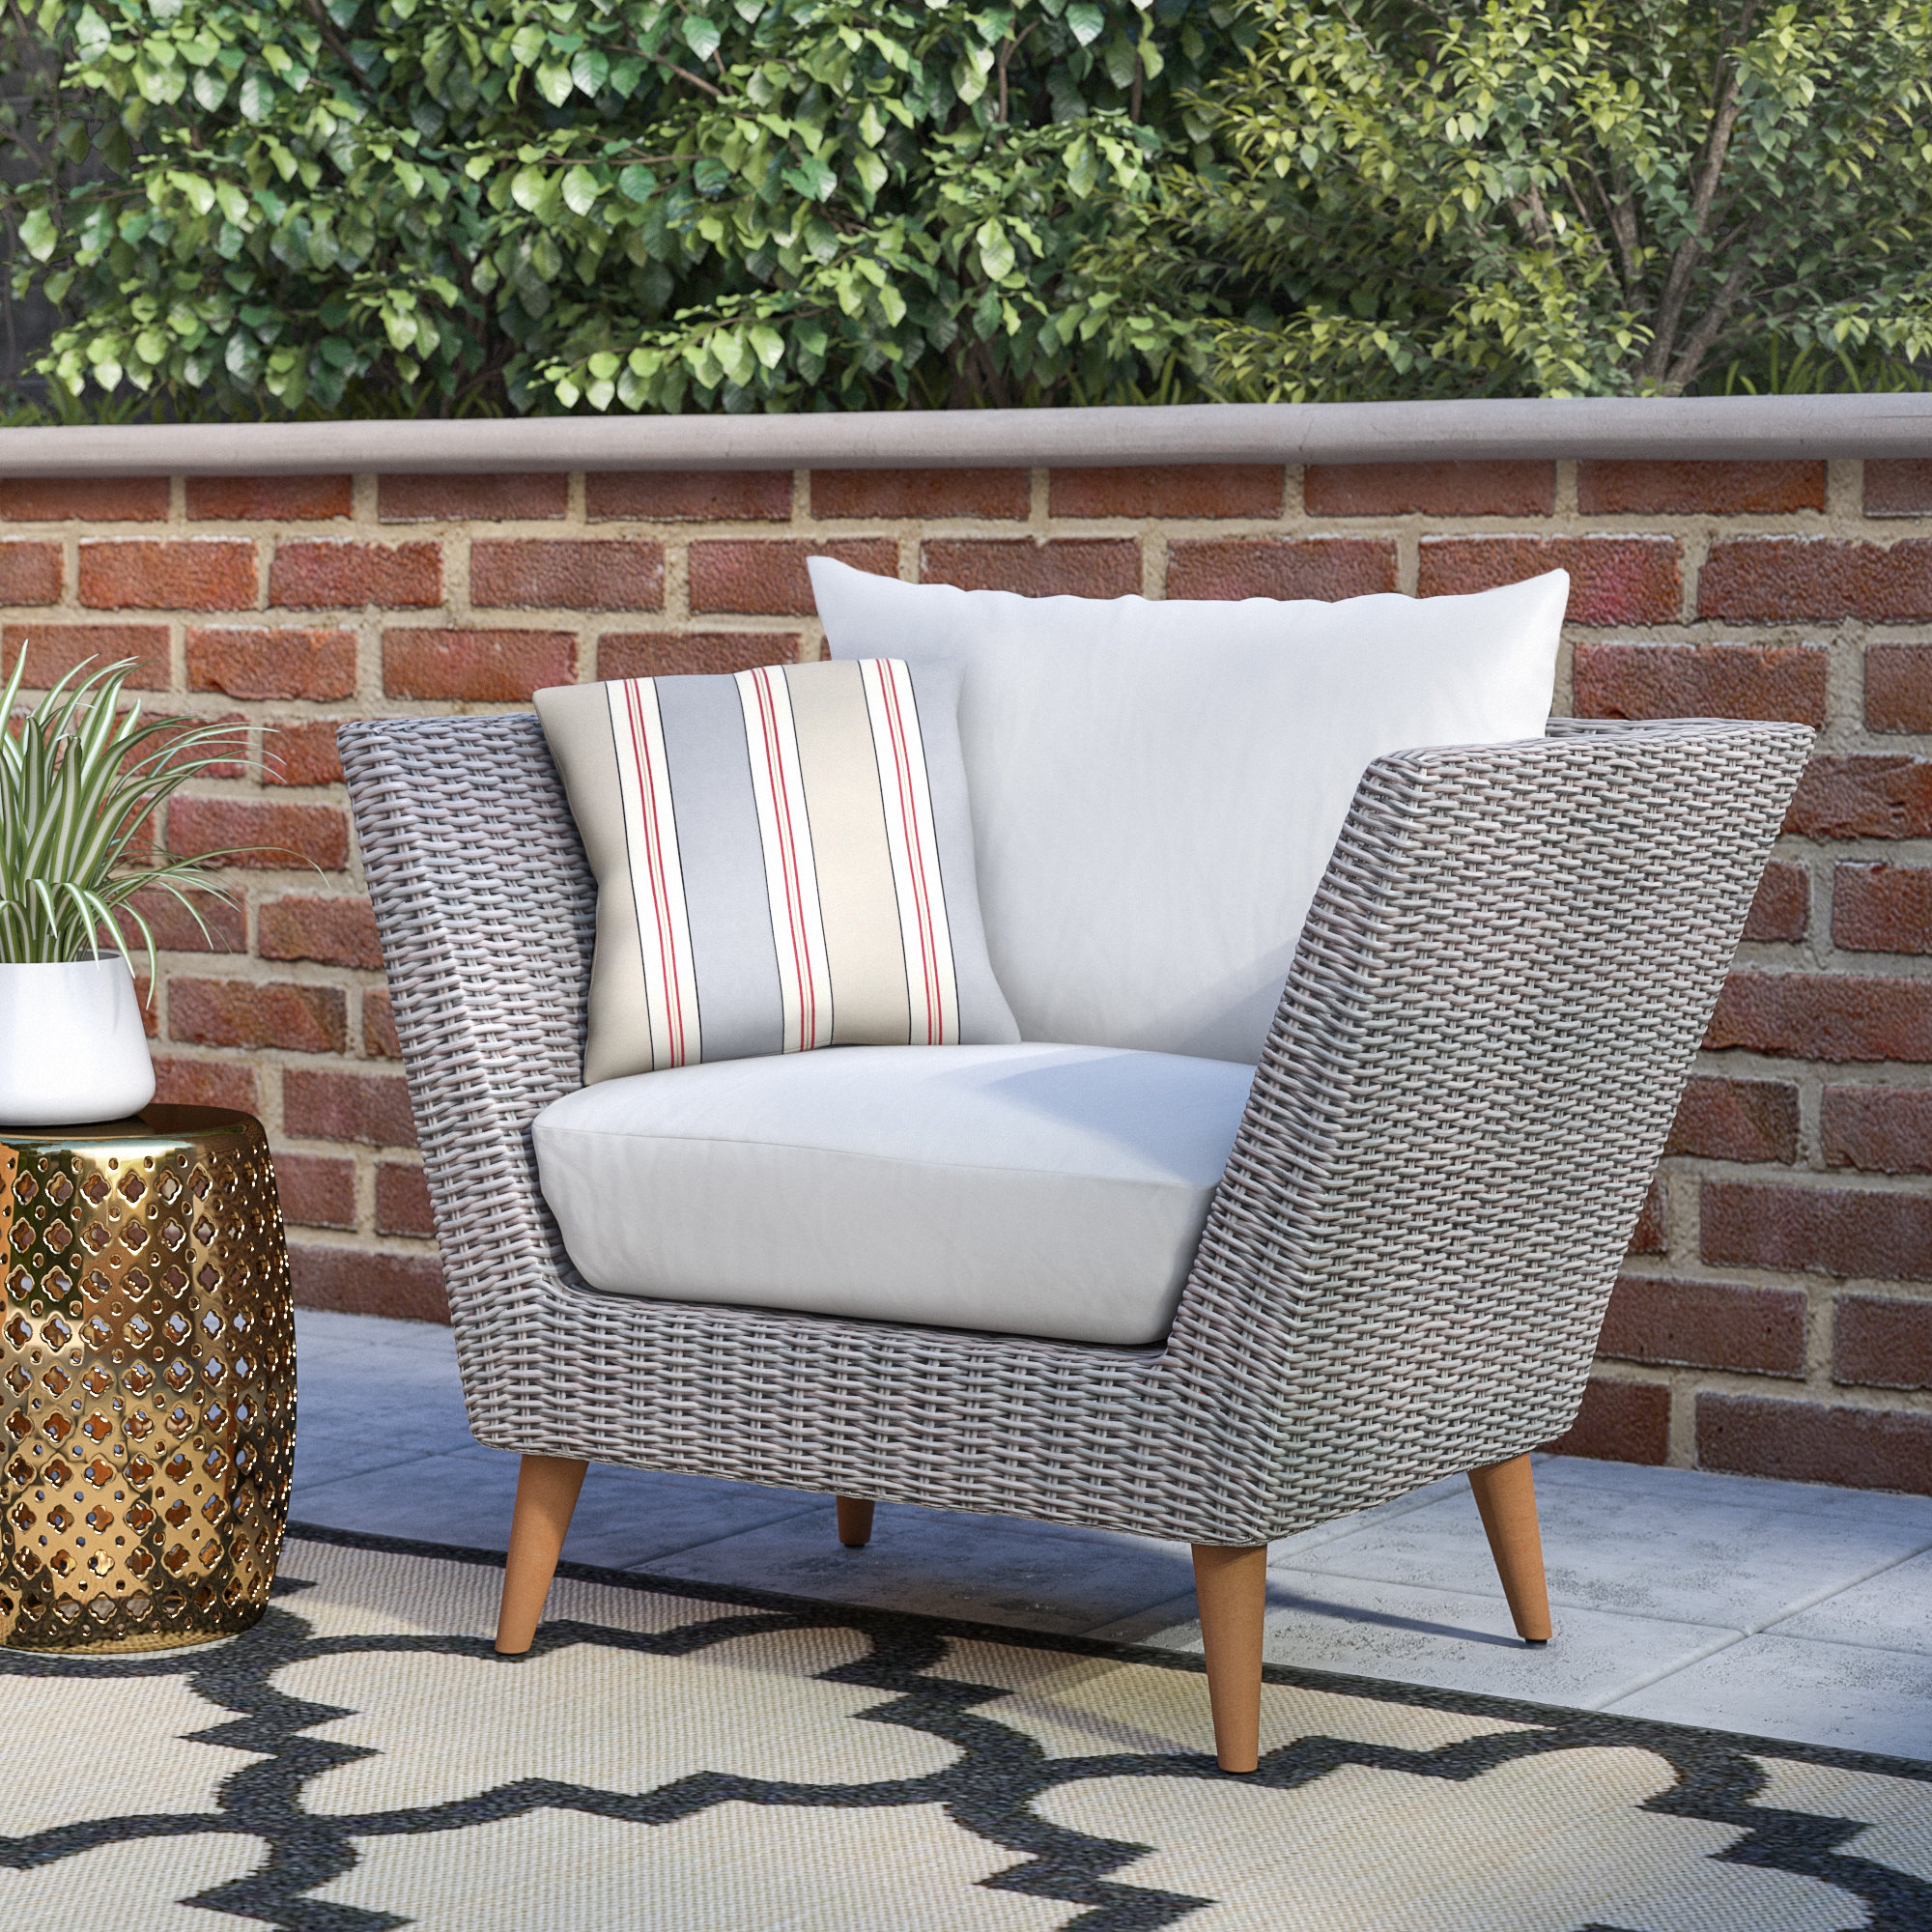 Newbury Patio Sofas With Cushions Throughout 2019 Newbury Patio Chair With Cushions (View 16 of 20)